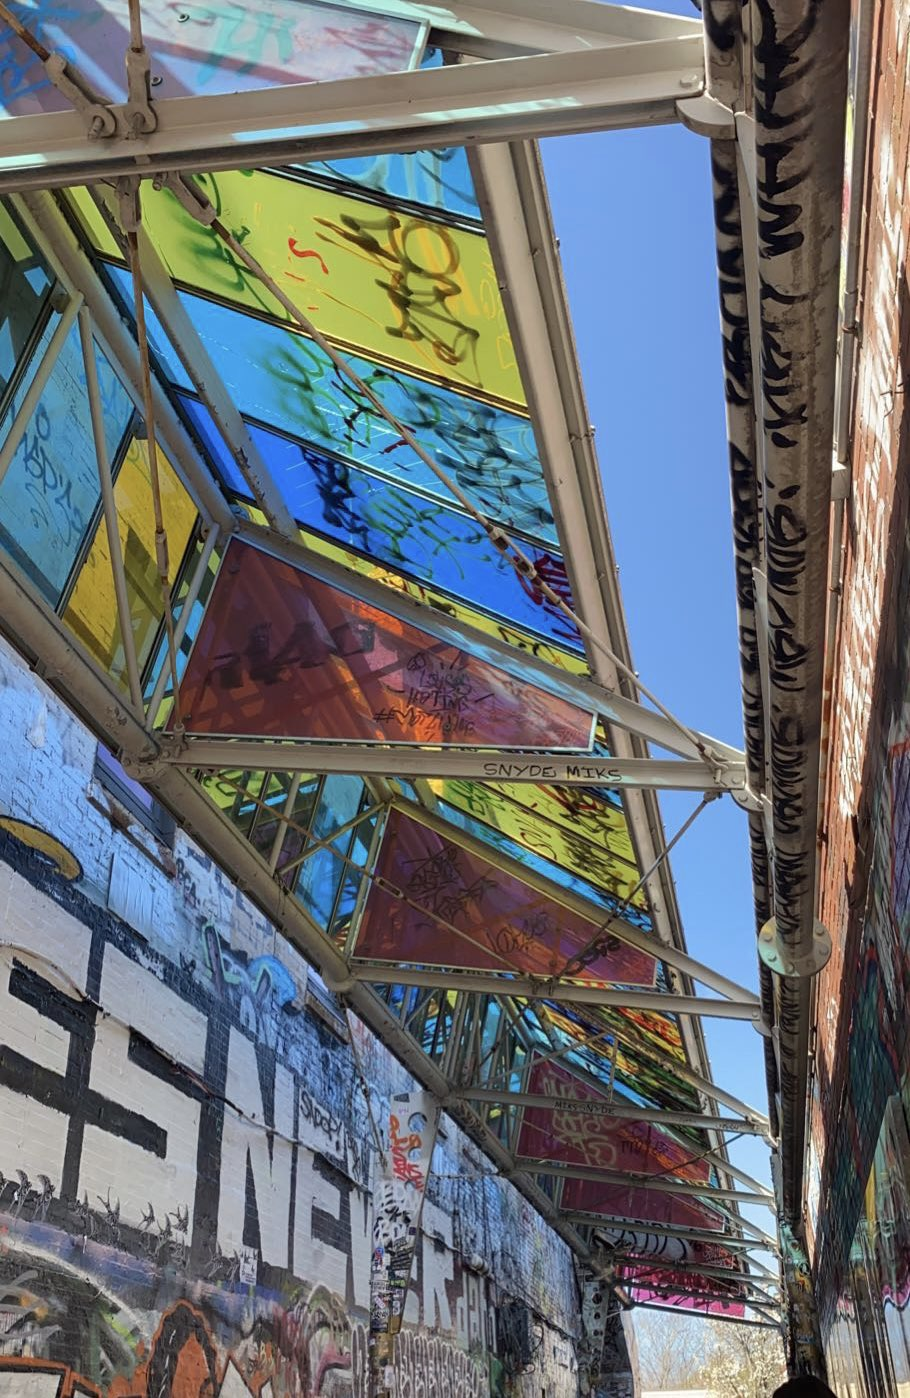 Street art on a stained-glass ceiling